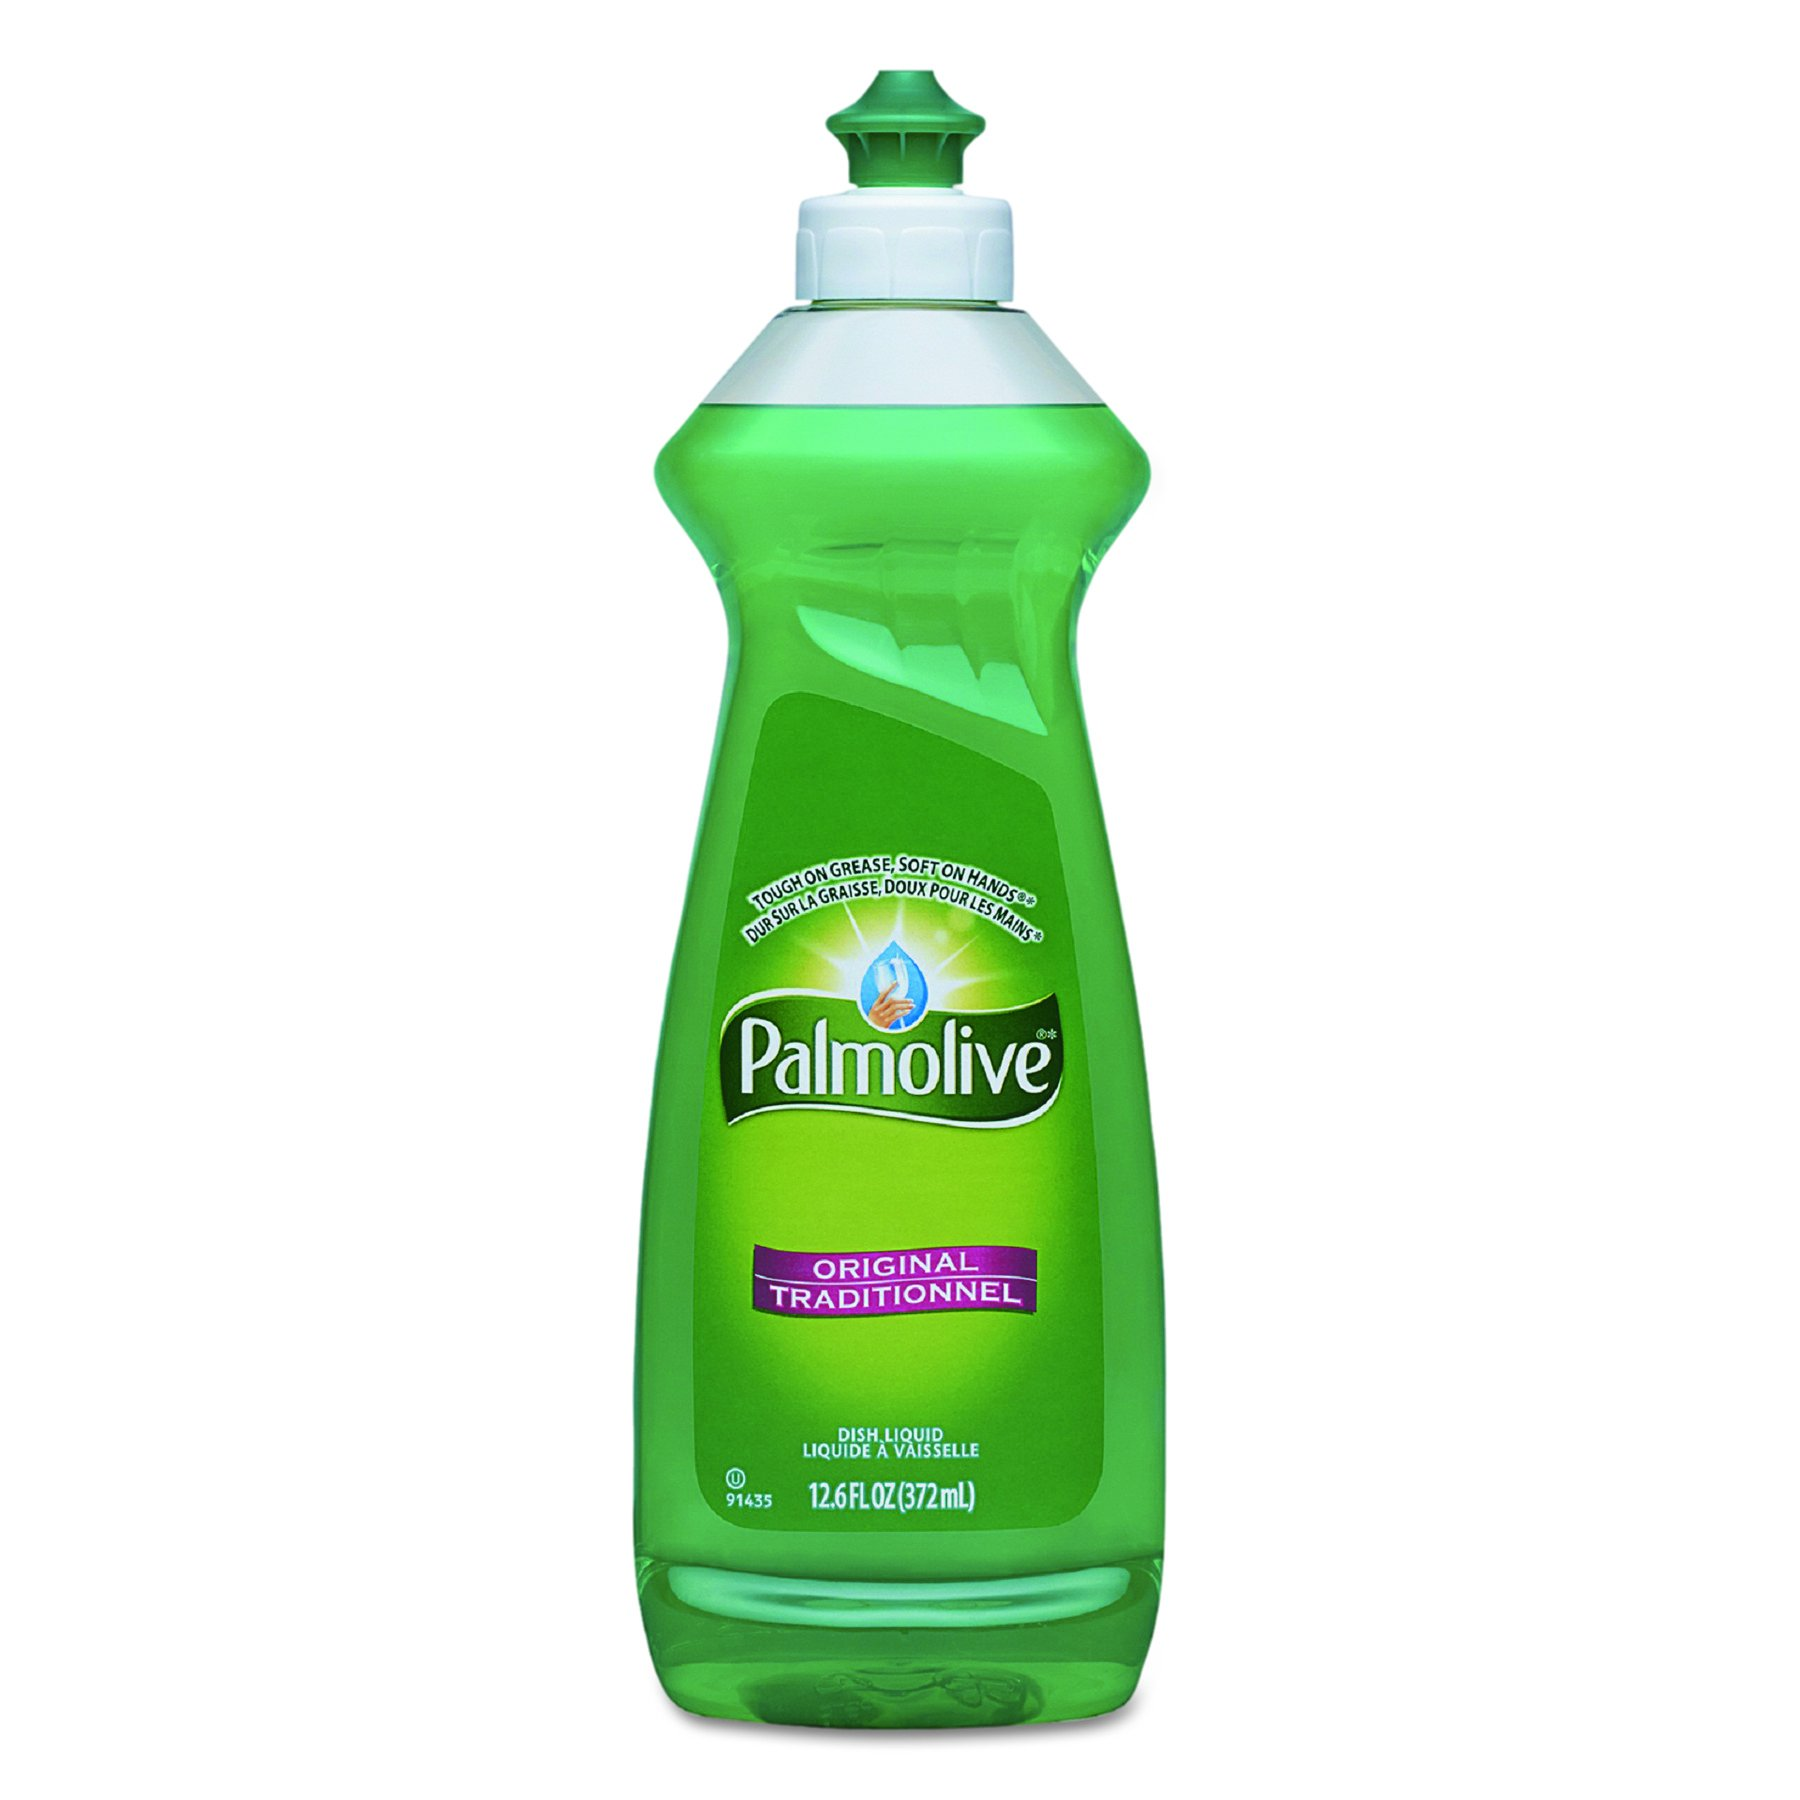 Palmolive CPC 46413 Dishwashing Liquid, Original Scent, 12.6 oz. Bottle (Pack of 20) by Palmolive